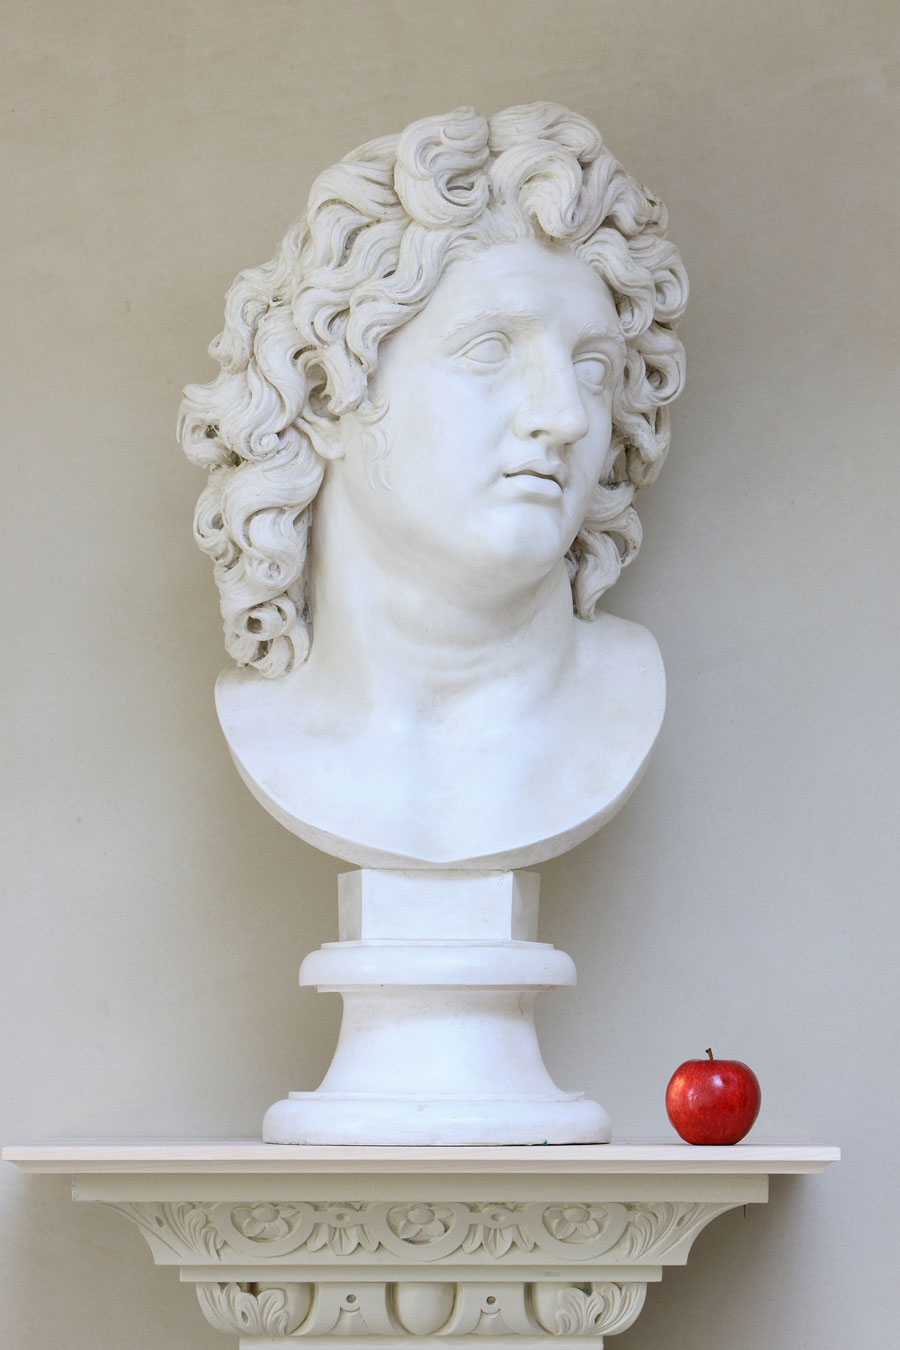 Copy of a Marble from a Portrait of Alexander the Great